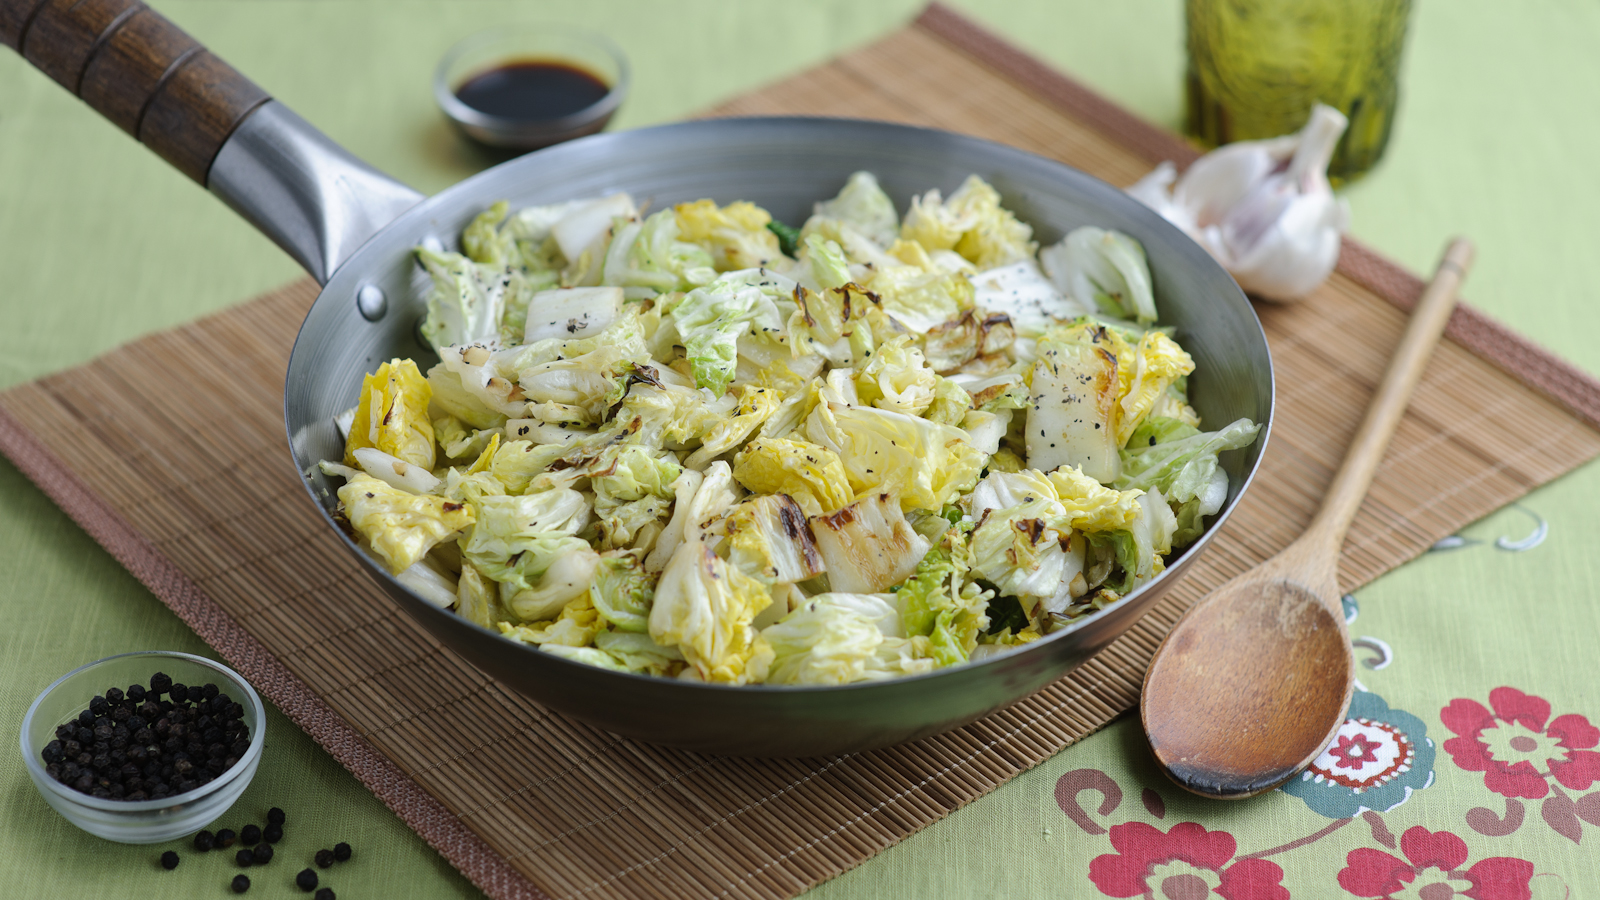 Stir Fried Cabbage With Garlic Recipe Bbc Food